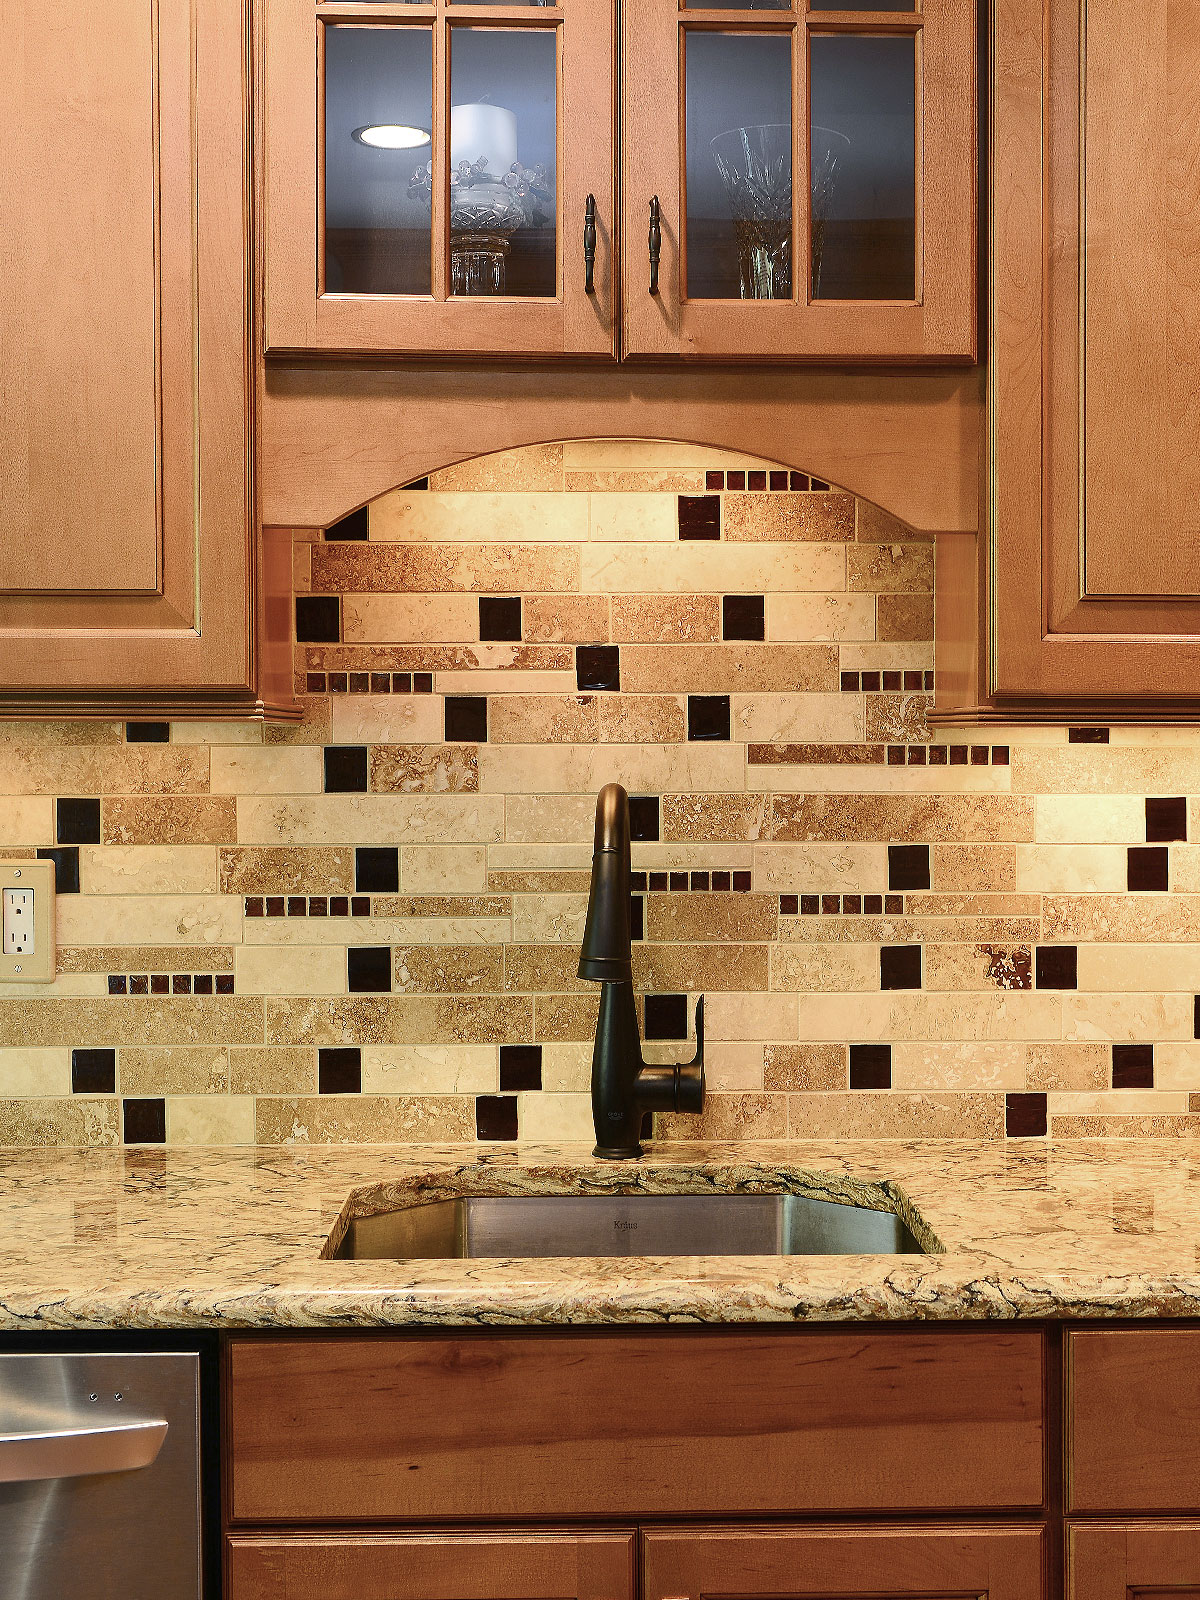 - 73+ Brown Backsplash Ideas - ( A Traditional? ) Classy Brown Ideas!